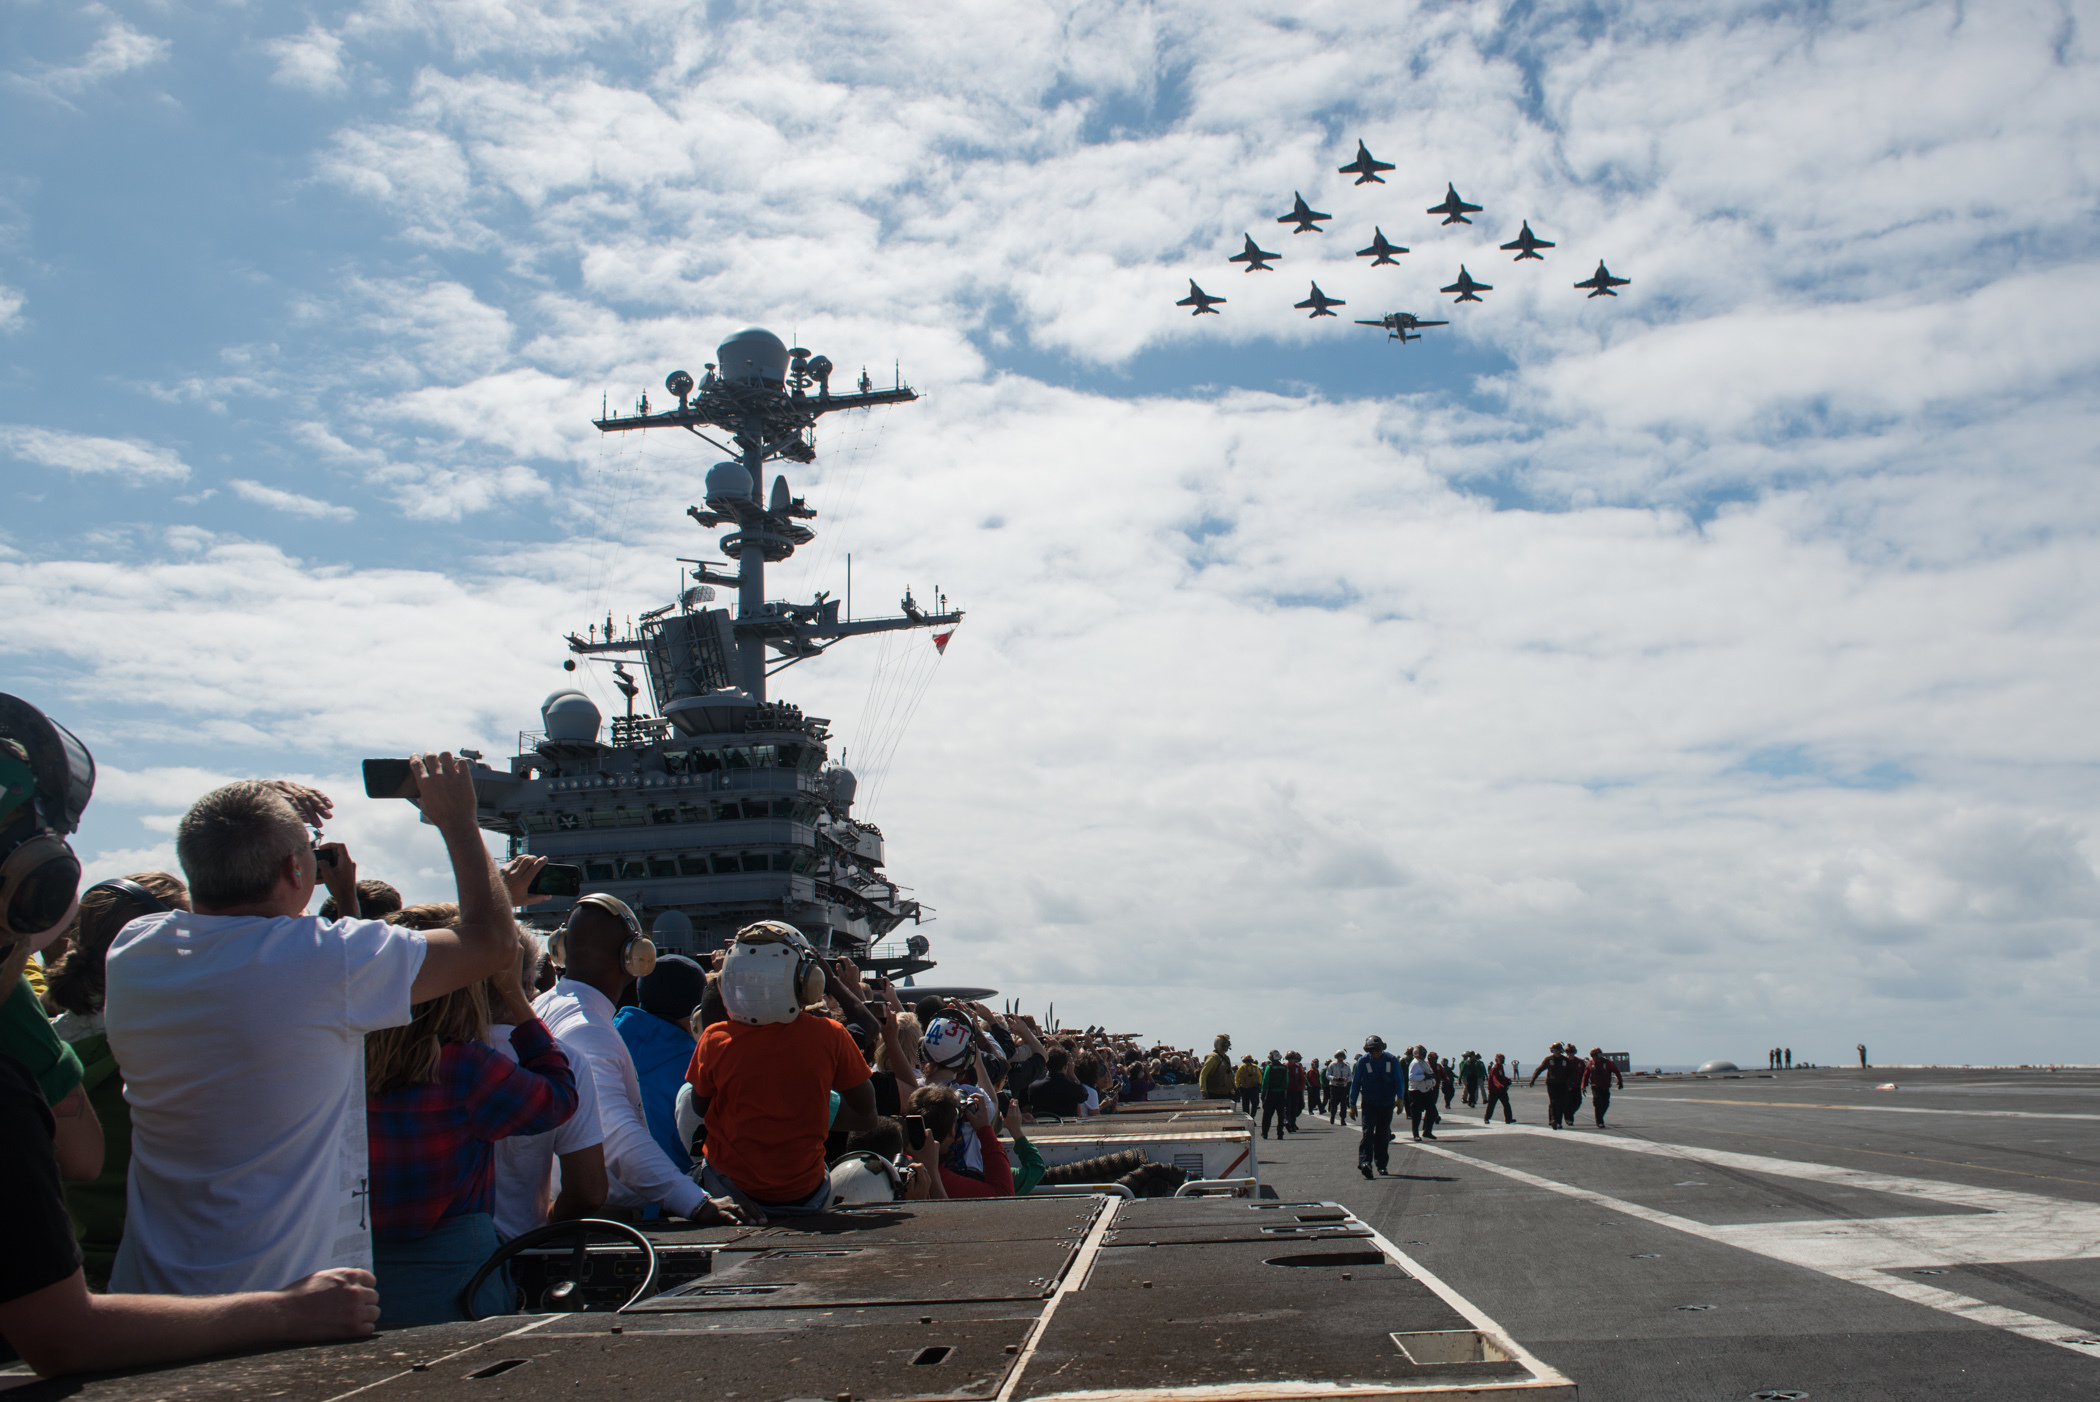 Sailors, family and friends watch as aircraft from Carrier Air Wing (CVW) 9 fly in formation above USS John C. Stennis (CVN 74) during an air power demonstration on Aug. 7, 2016, during the tiger cruise, which is an opportunity for Sailors to invite their family and friends to experience life underway aboard a Navy ship. US Navy photo.